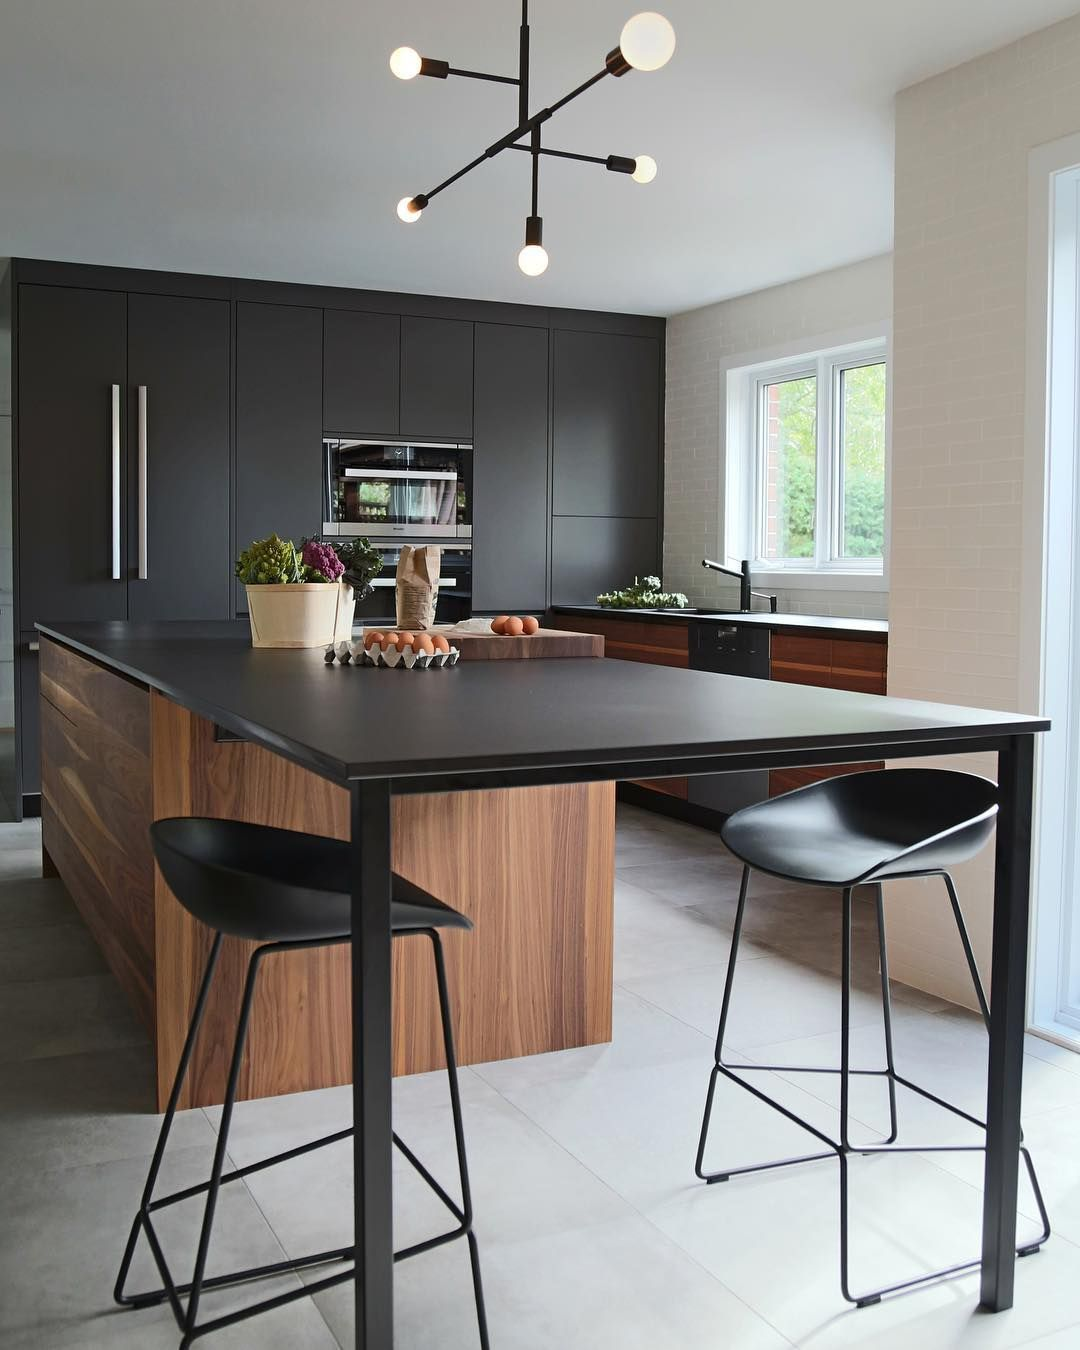 Pin de Alessandra Casanova en Kitchen design | Pinterest | Cocinas ...